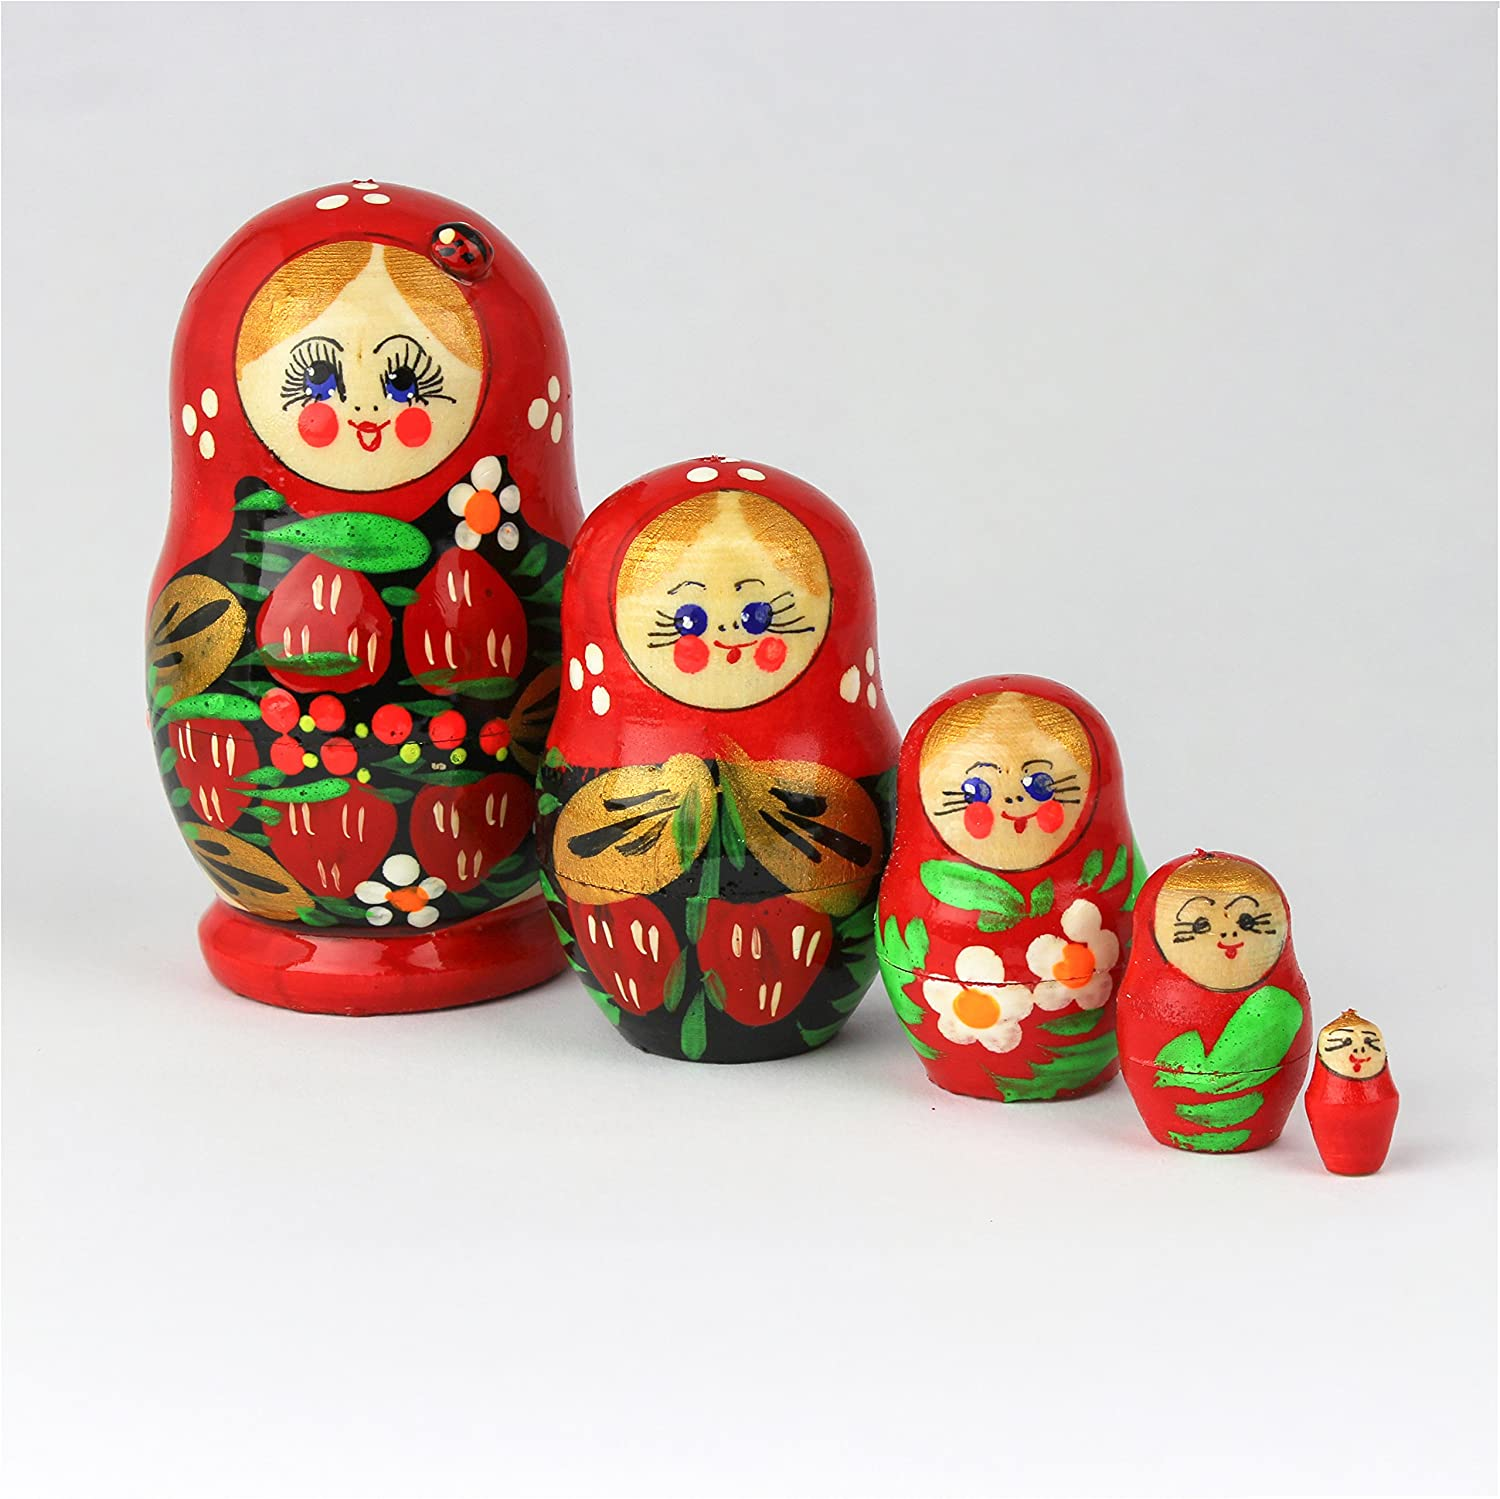 5 pcs Ladybug Heka Naturals Matryoshka Russian Nesting Dolls Hand Made in Russia 5 Pieces 9 cm Wooden Gift Toy